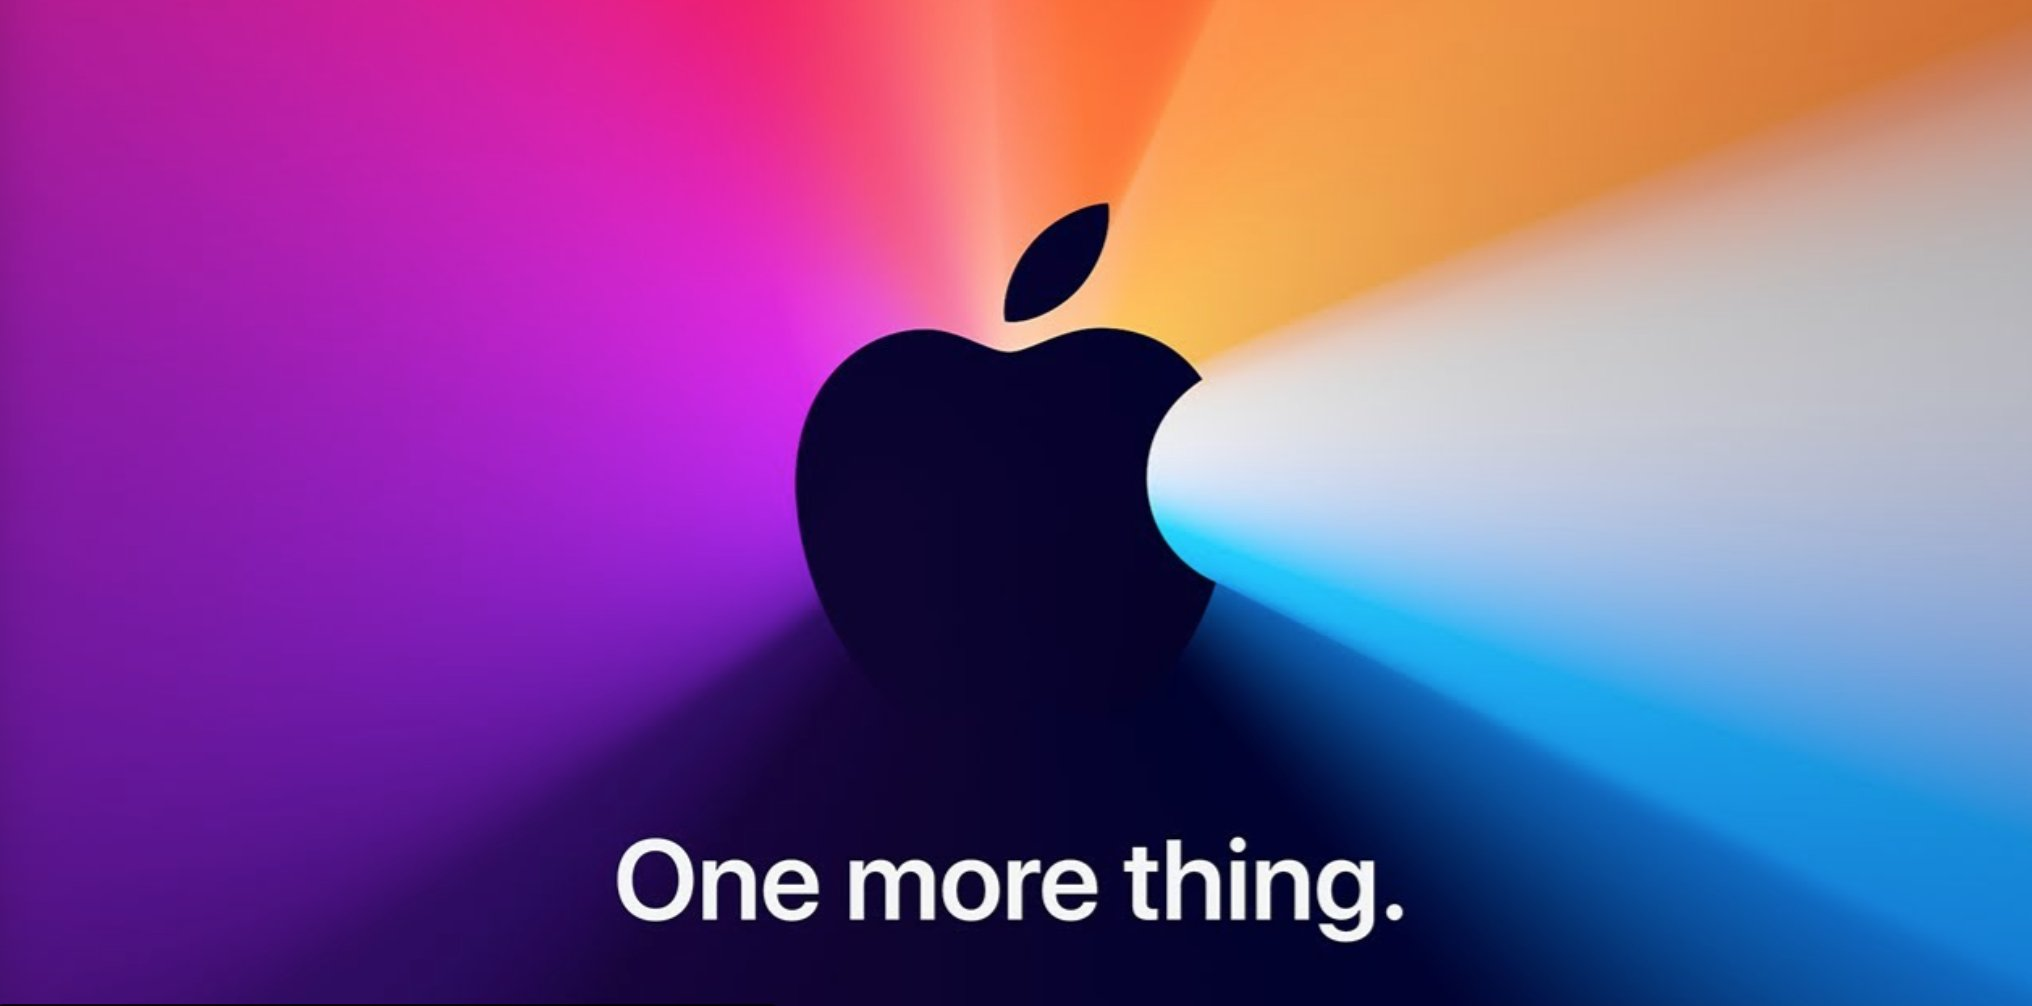 One More Thing y logo de Apple